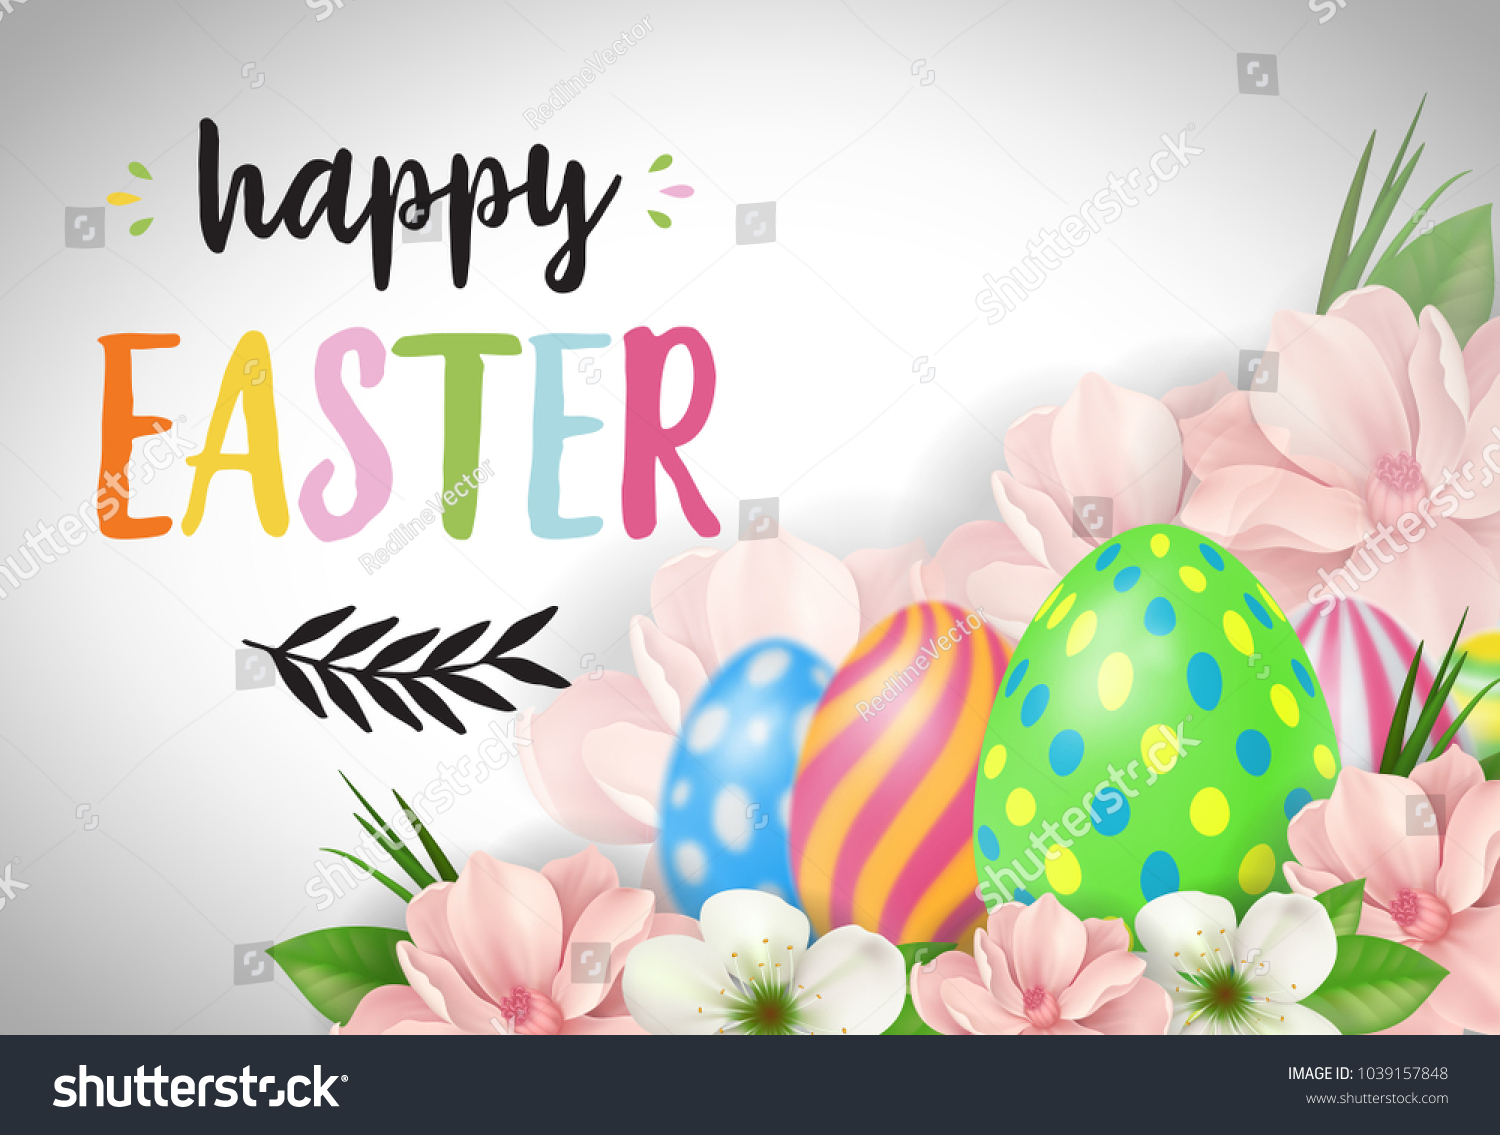 Happy Easter Lettering Easter Greeting Card Stock Vector 1039157848